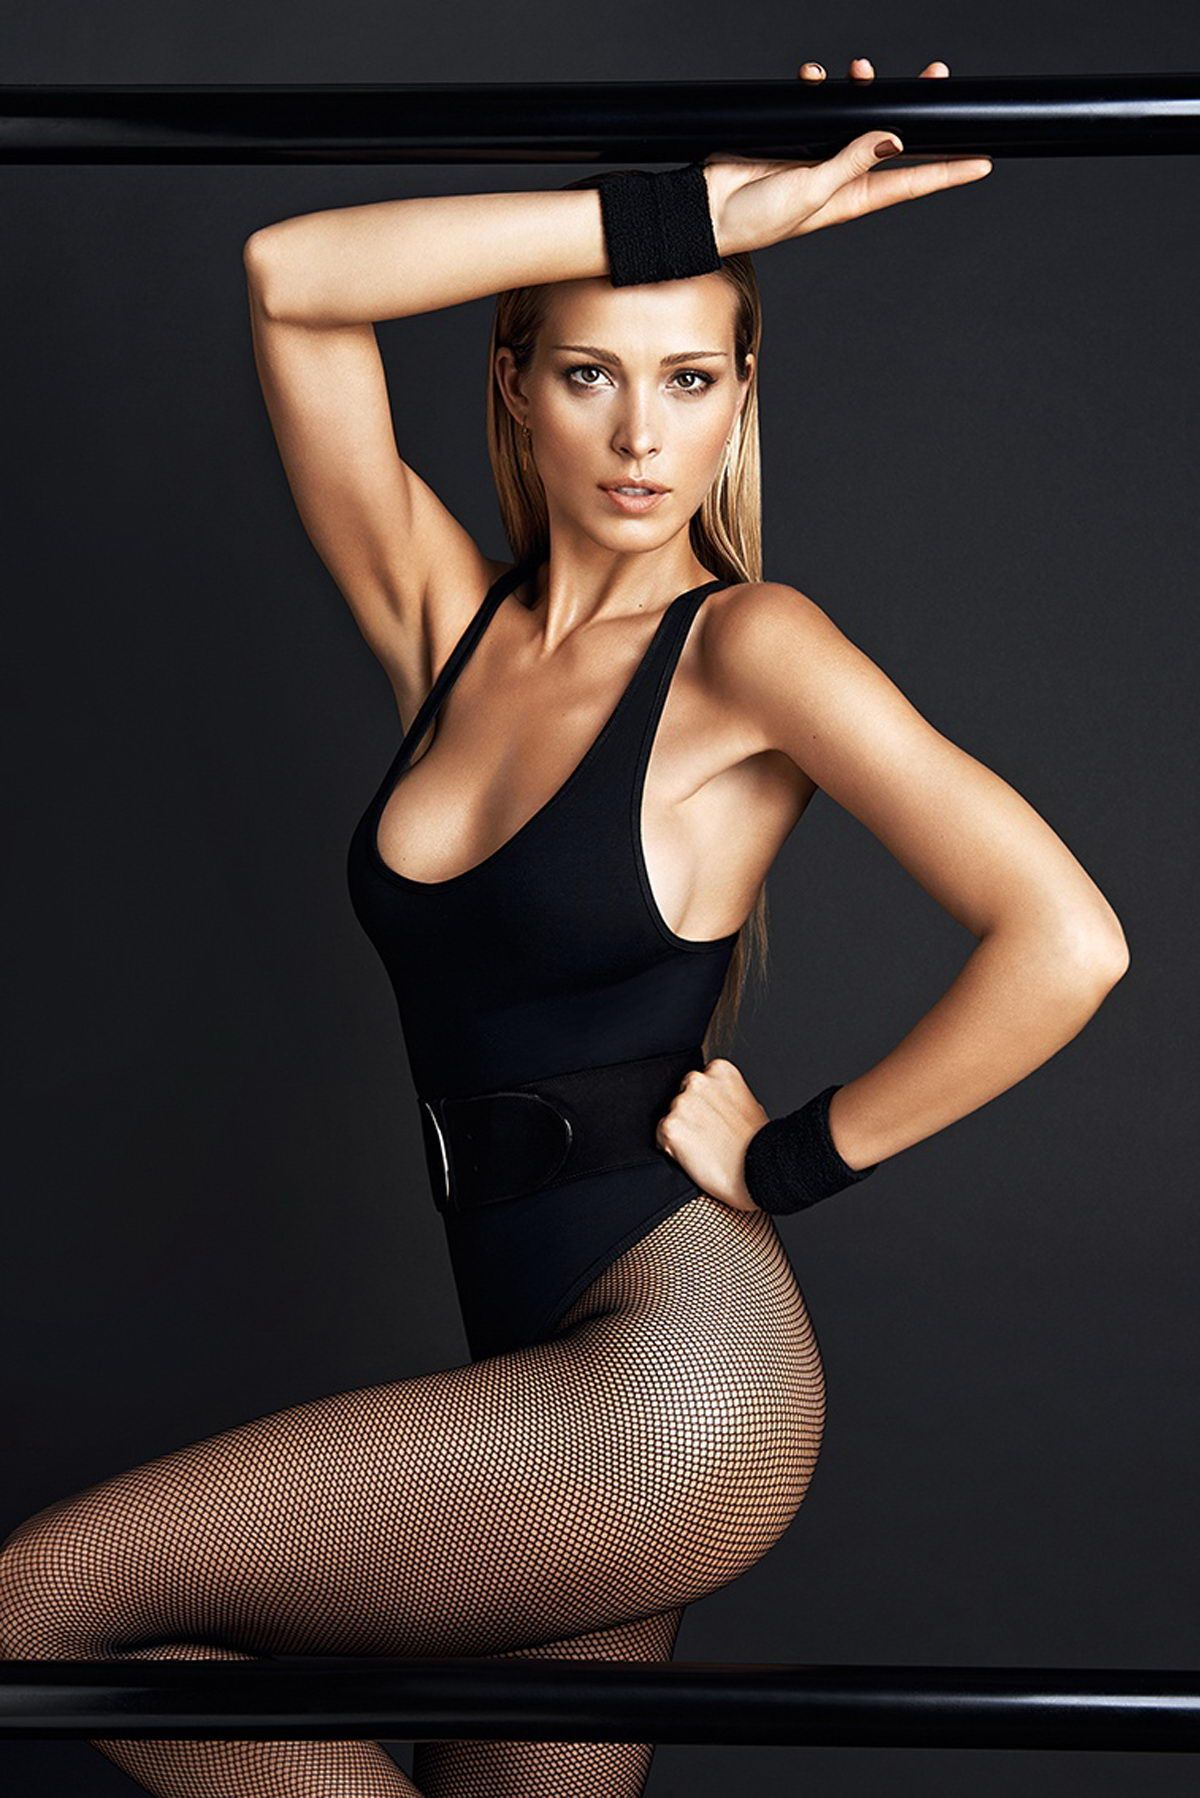 PETRA NEMCOVA in GQ Magazine, Portugal May 2014 Issue